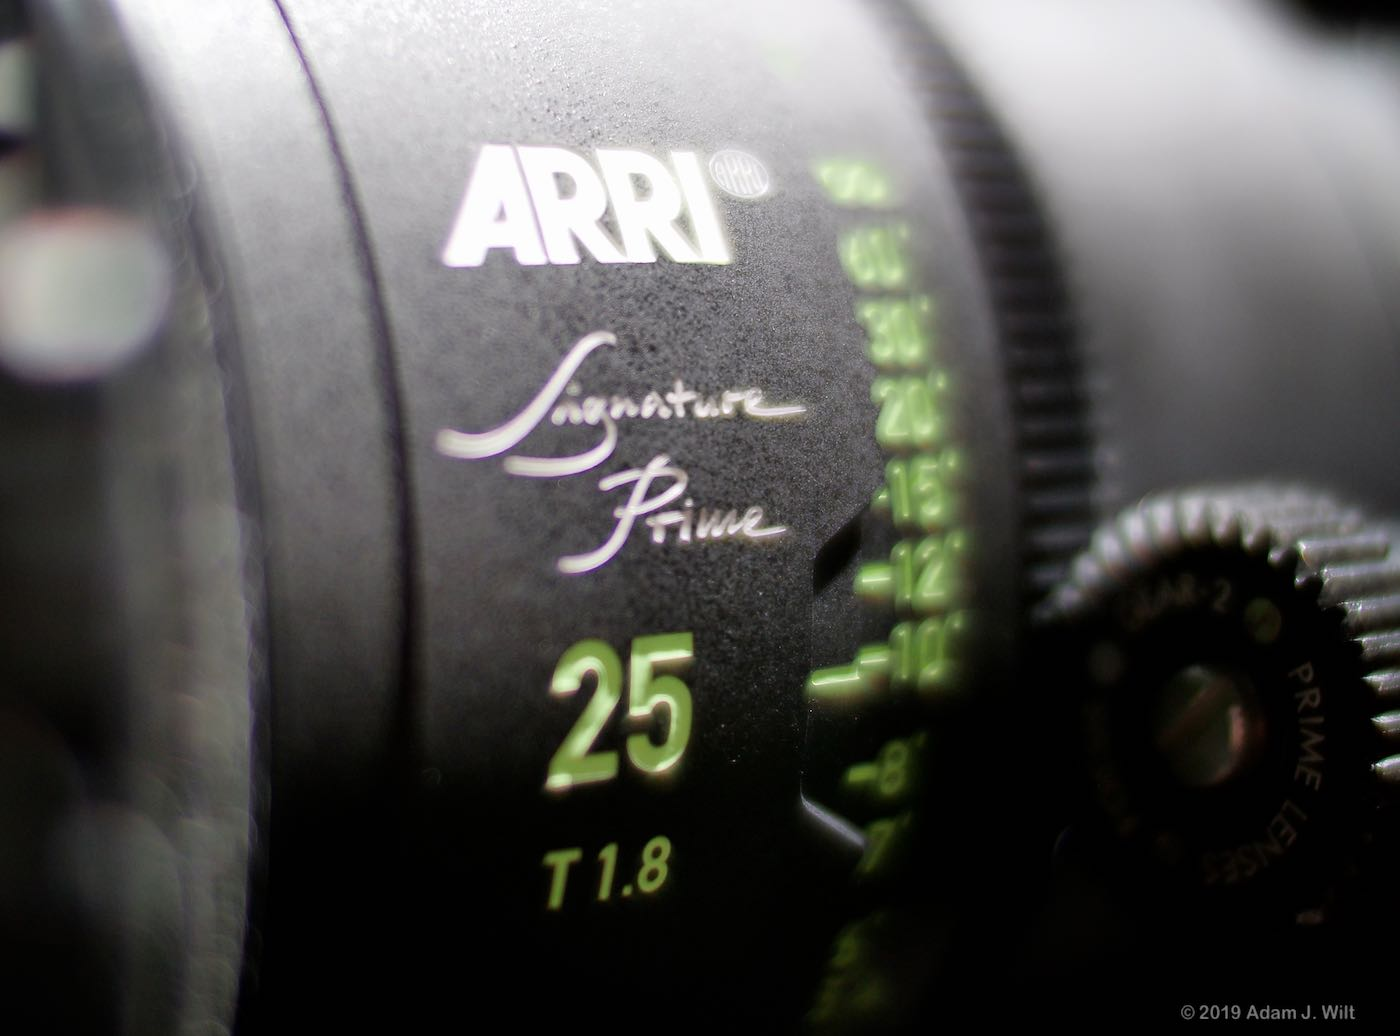 ARRI Signature primes are T1.8 large-format lenses